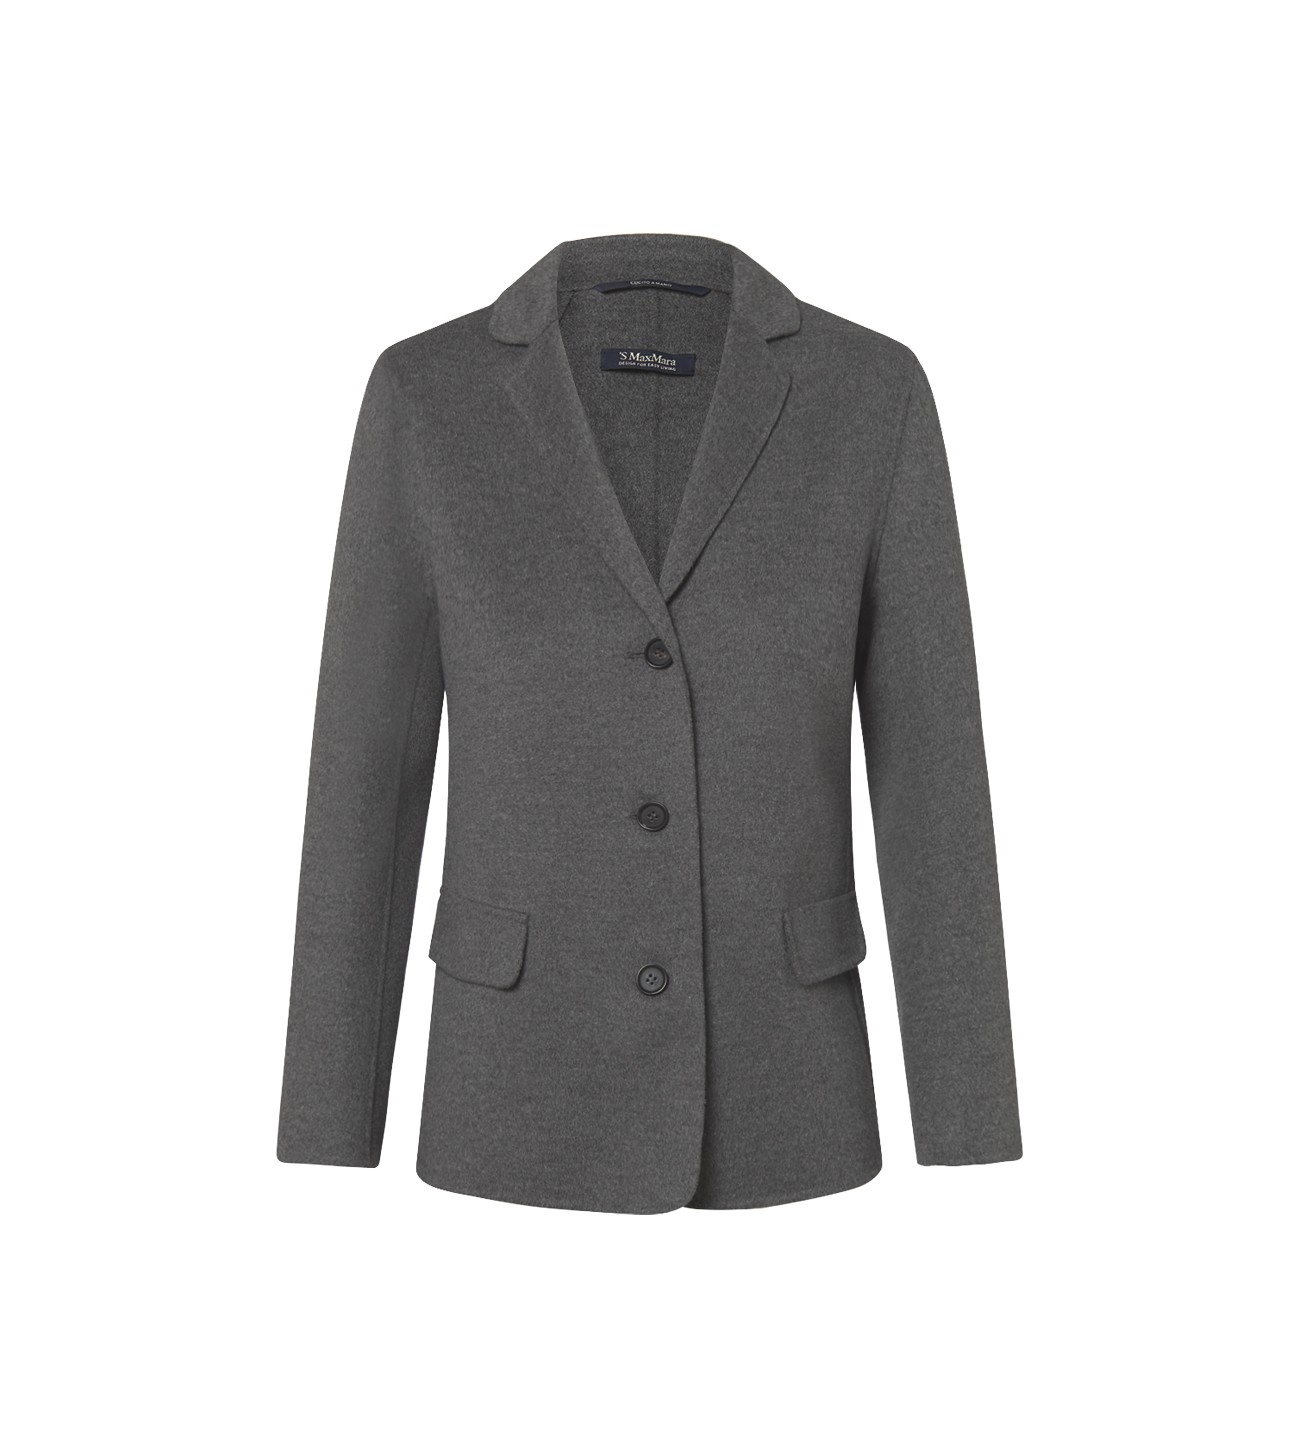 S_MAX_MARA_OVERSIZED_JACKET_WITH_POCKETS_MARIONA_FASHION_CLOTHING_WOMAN_SHOP_ONLINE_MOENA